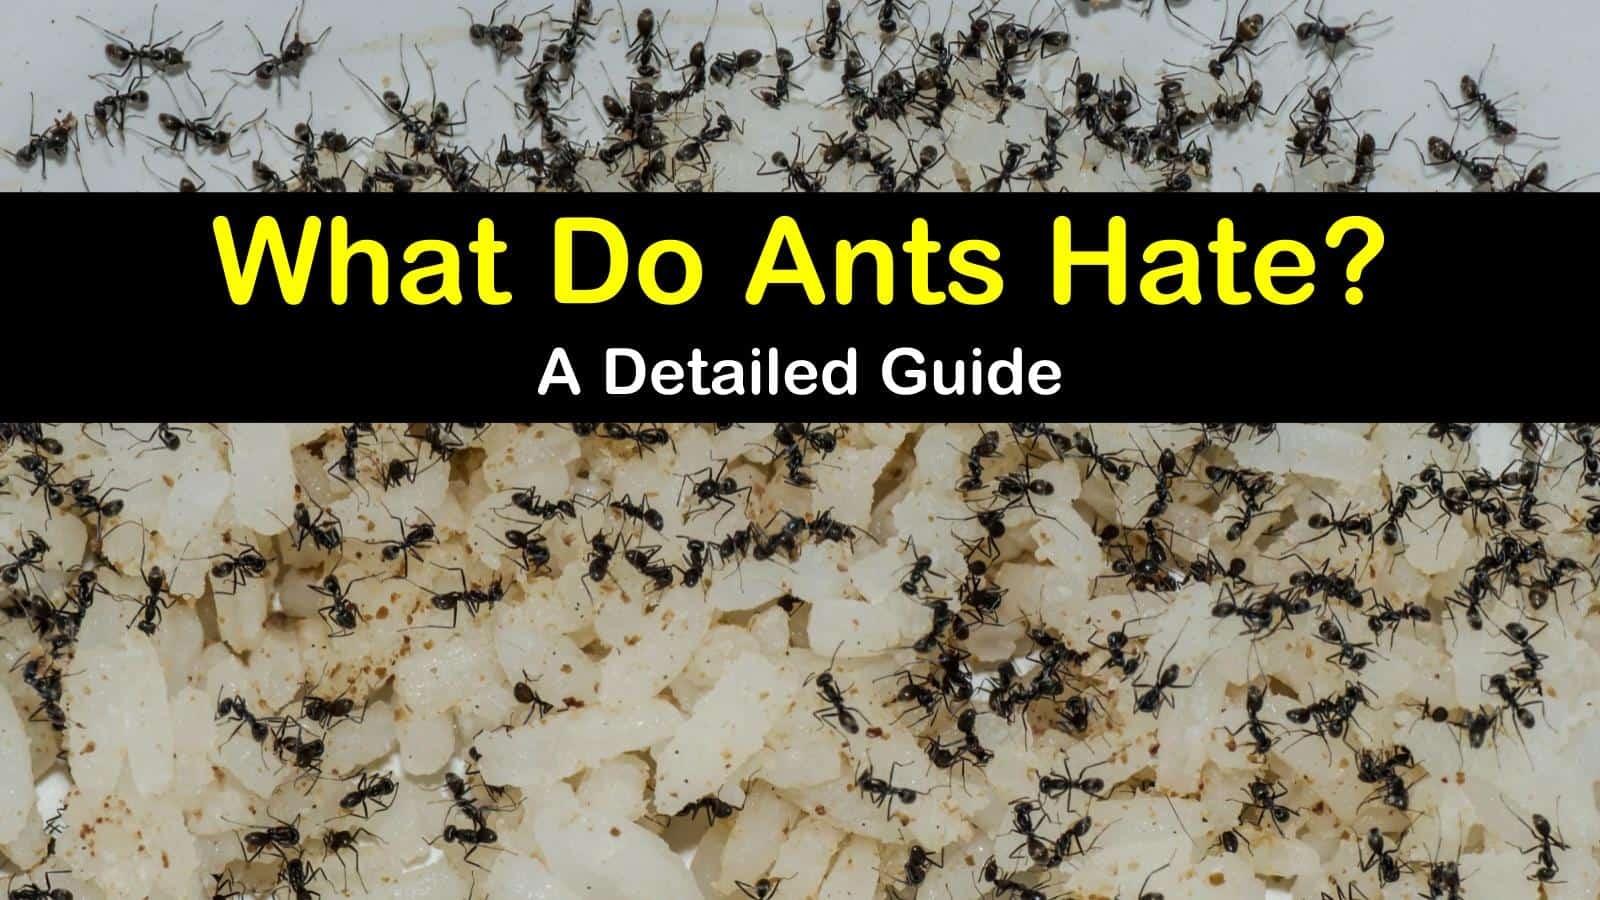 what do ants hate titleimg1